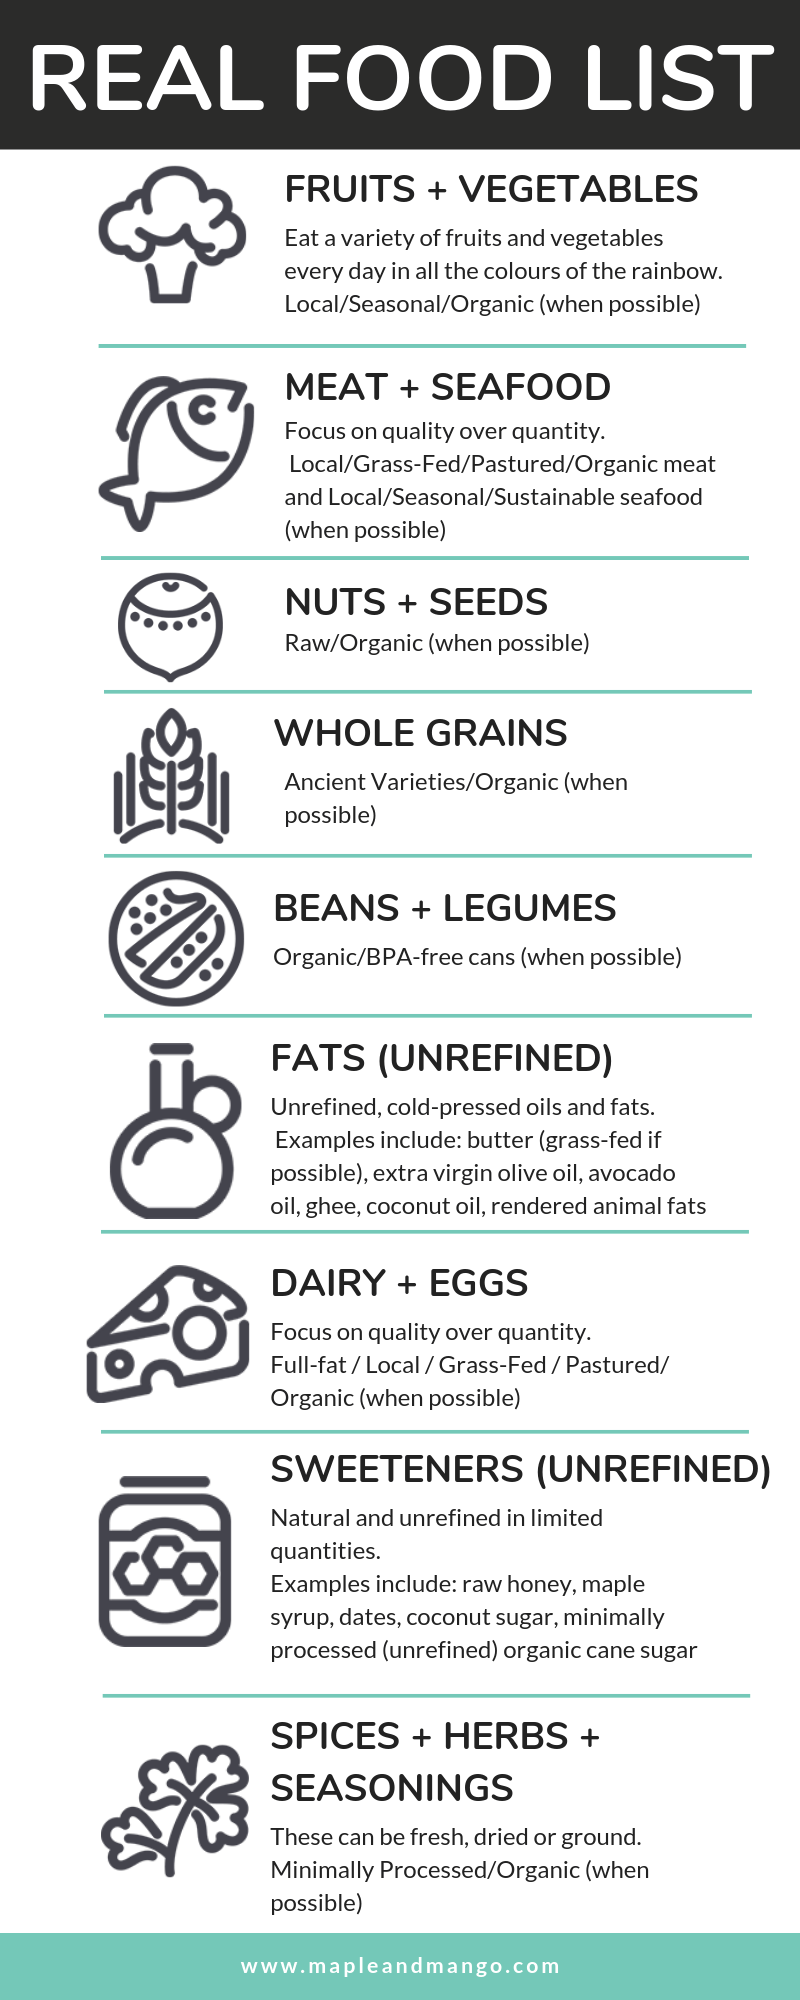 Infographic providing a real food list